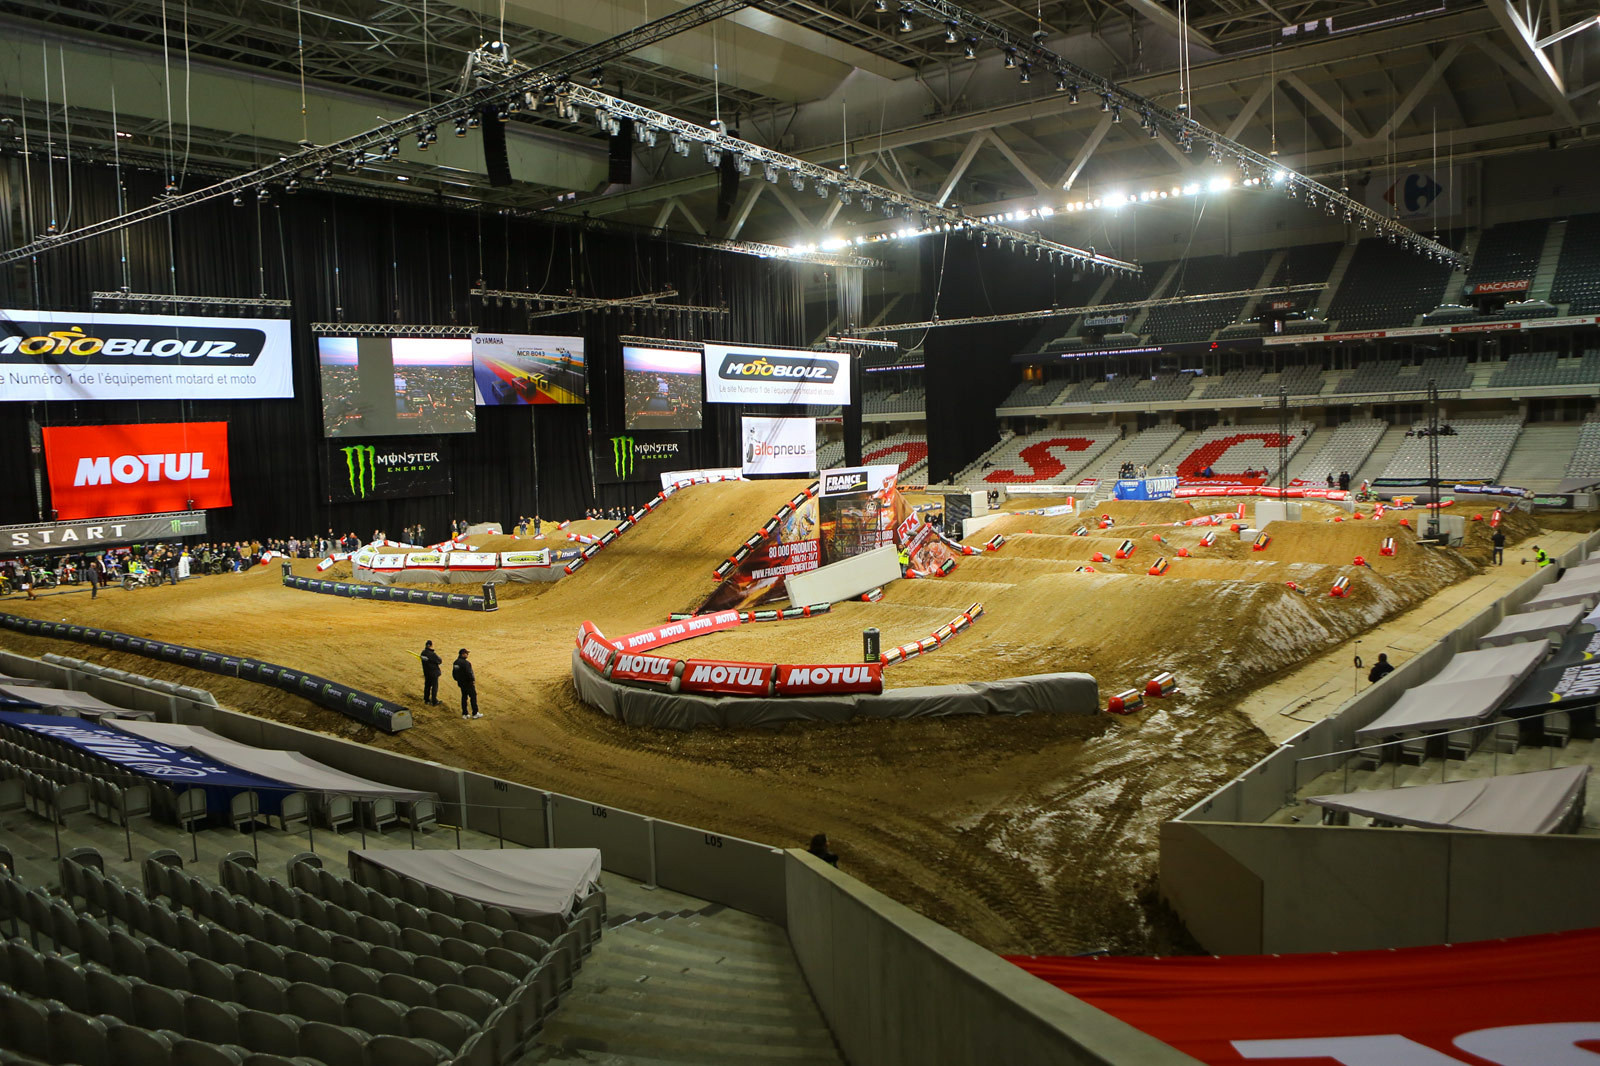 Stade Pierre Mauroy - Supercross Paris-Lille: Press Day - Motocross Pictures - Vital MX